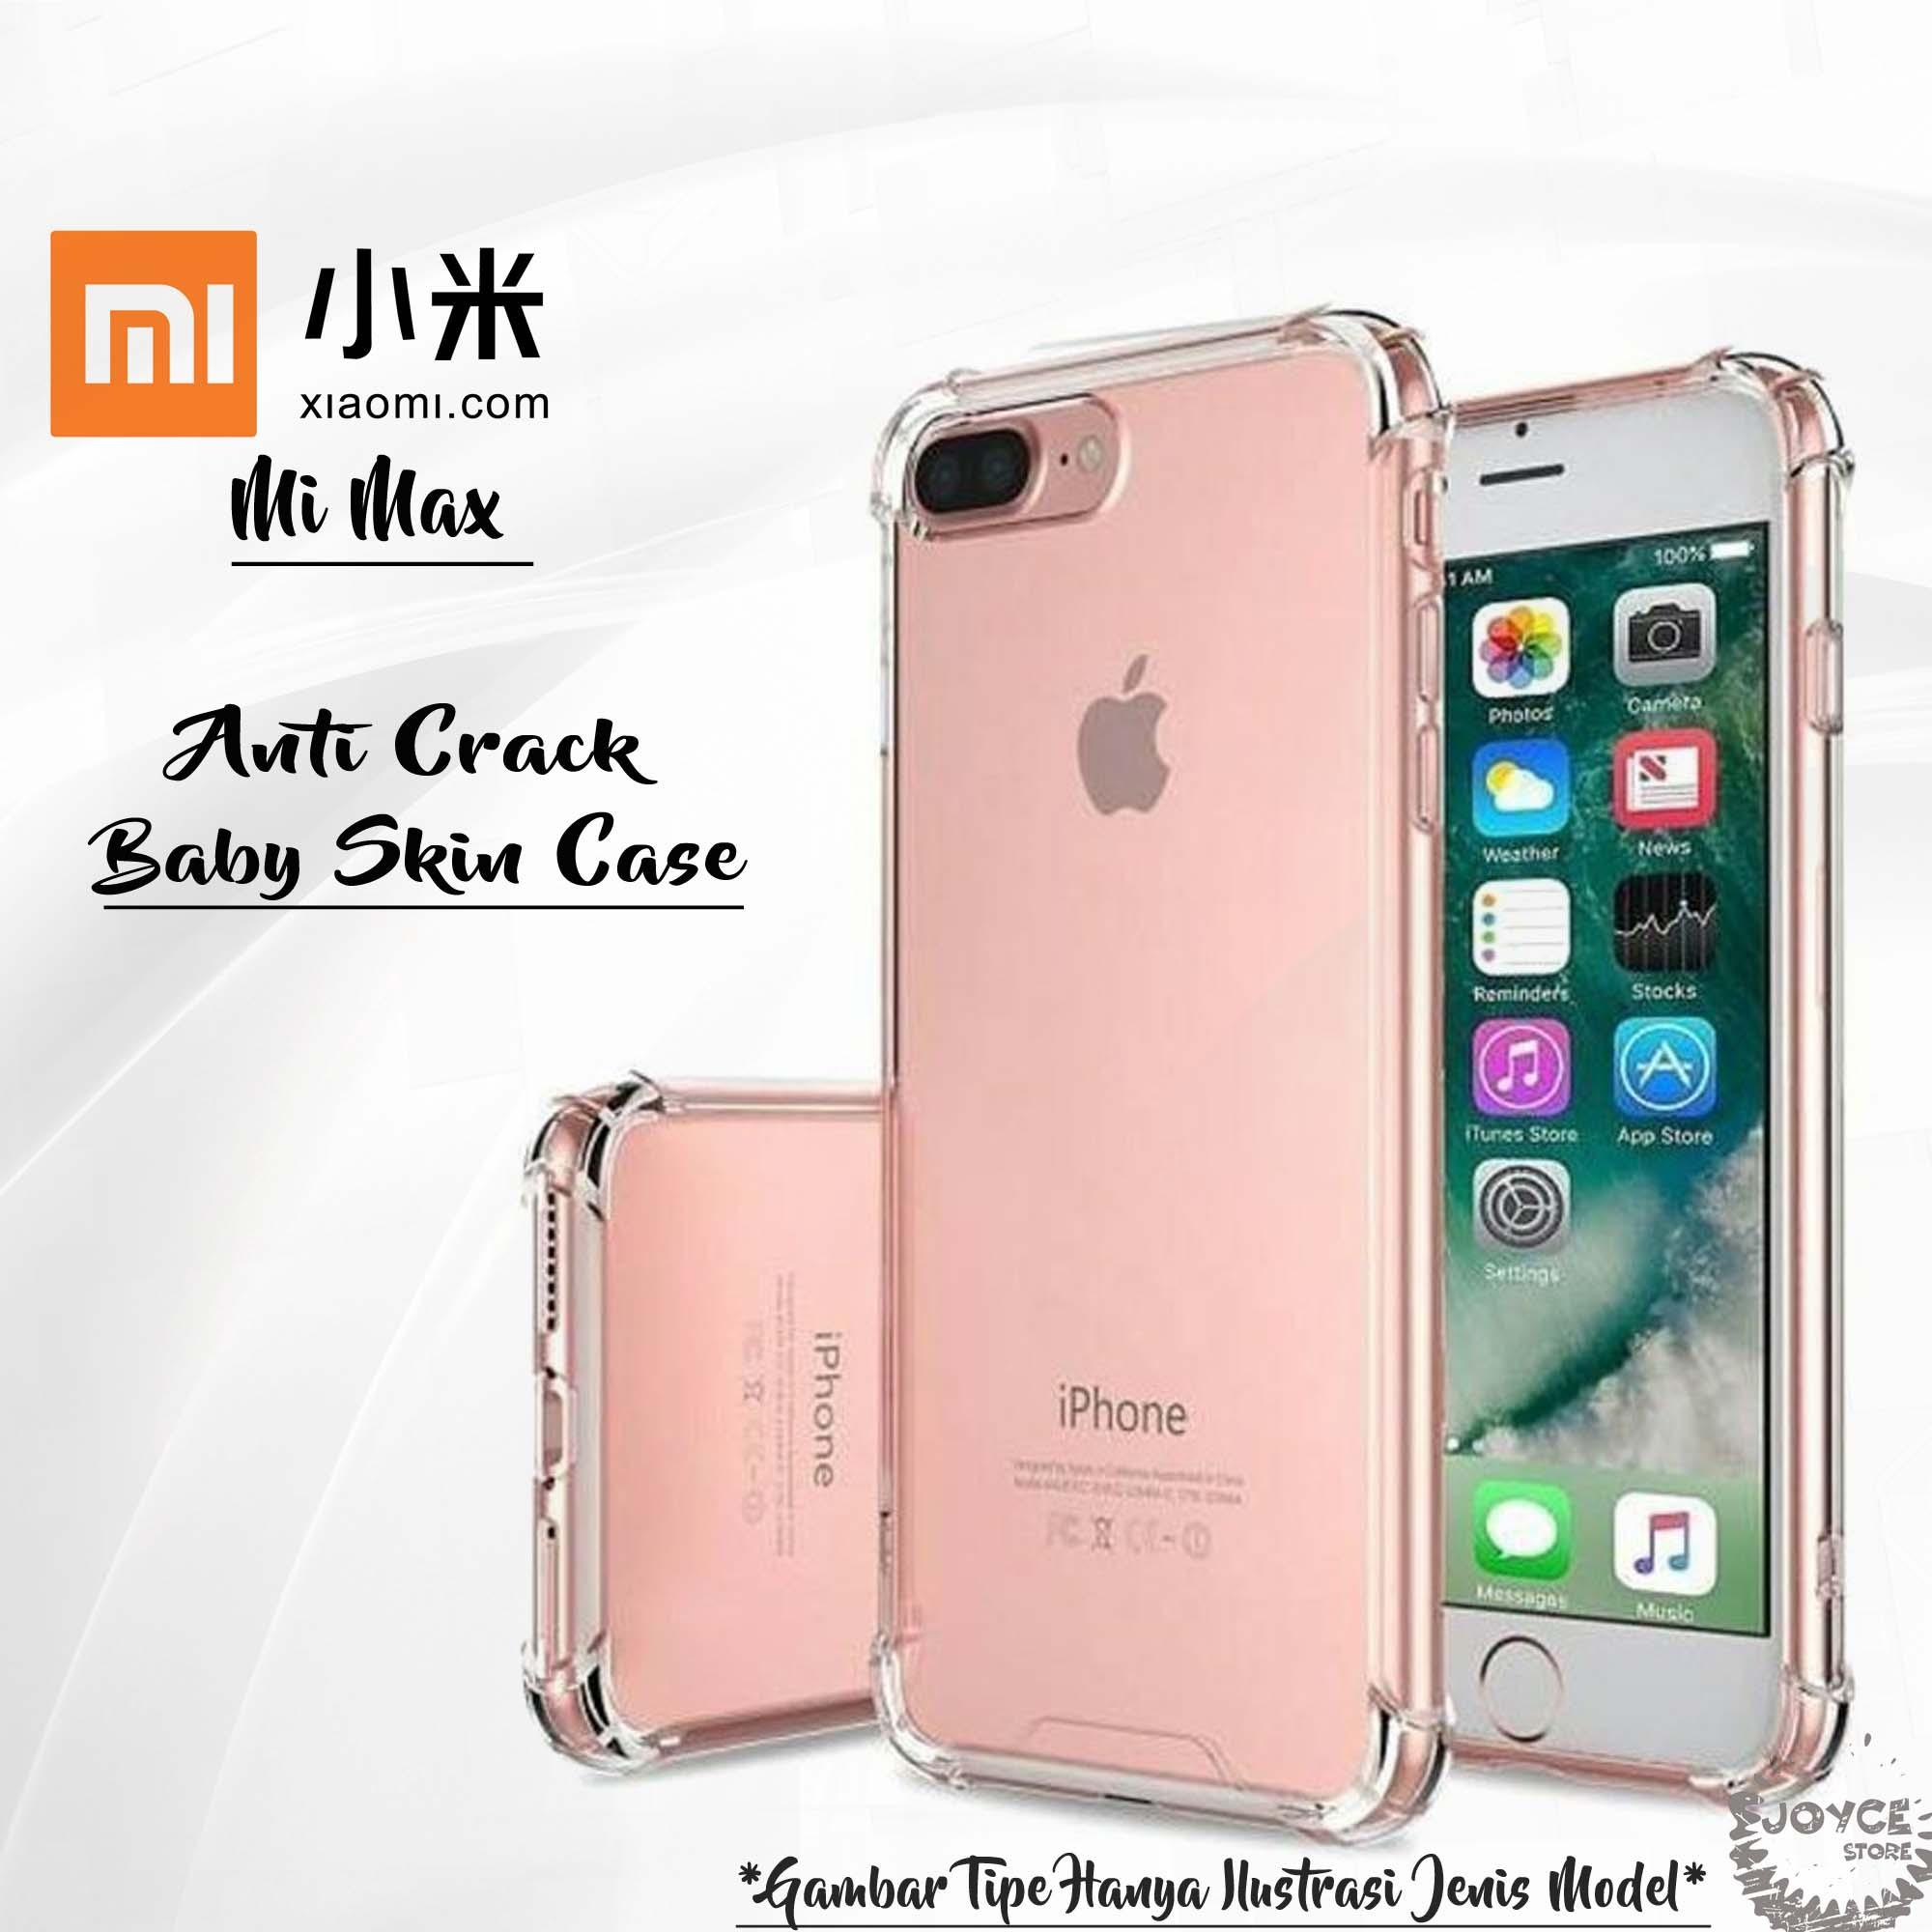 Harga Jual Xiaomi Silicone Casing For Powerbank 16000 Mah Biru 25000 Tcash Vaganza 29 Mi Power Bank 10000mah 2 Fast Charging Generation Silver Joyce Soft Silicon Max Slim Matte Black Anti Crack Case Baby Skin